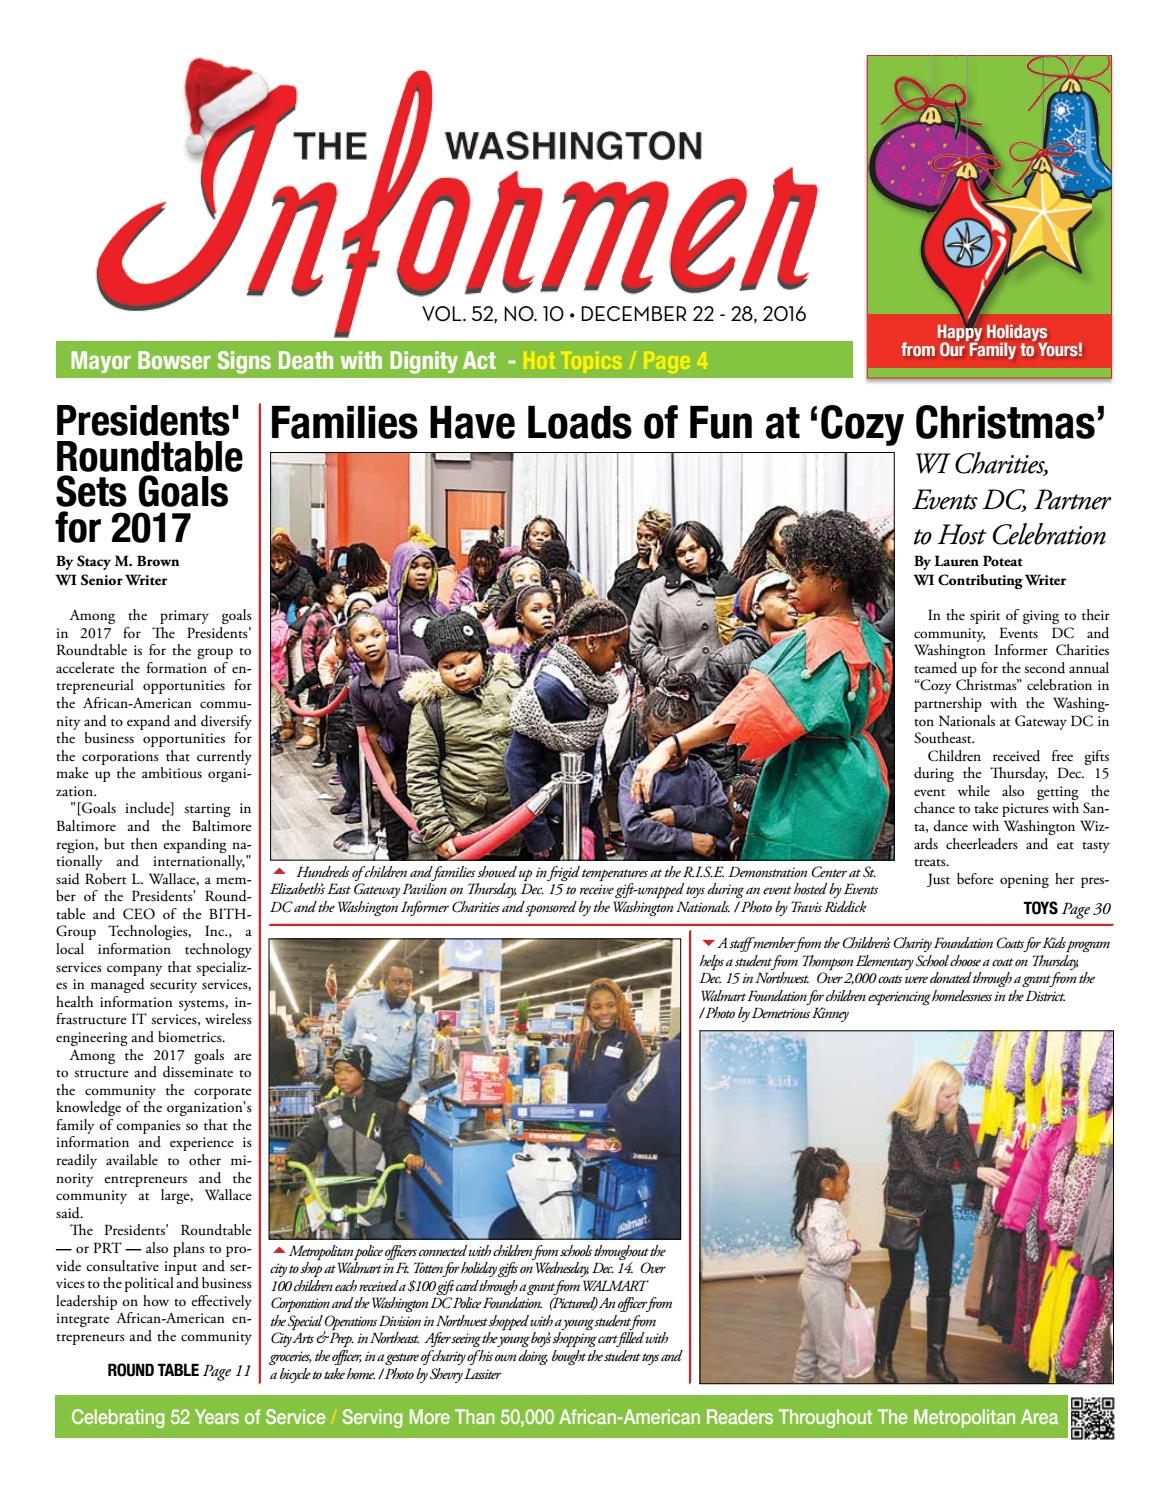 01ee9c540 The Washington Informer - December 22, 2016 by The Washington Informer -  issuu